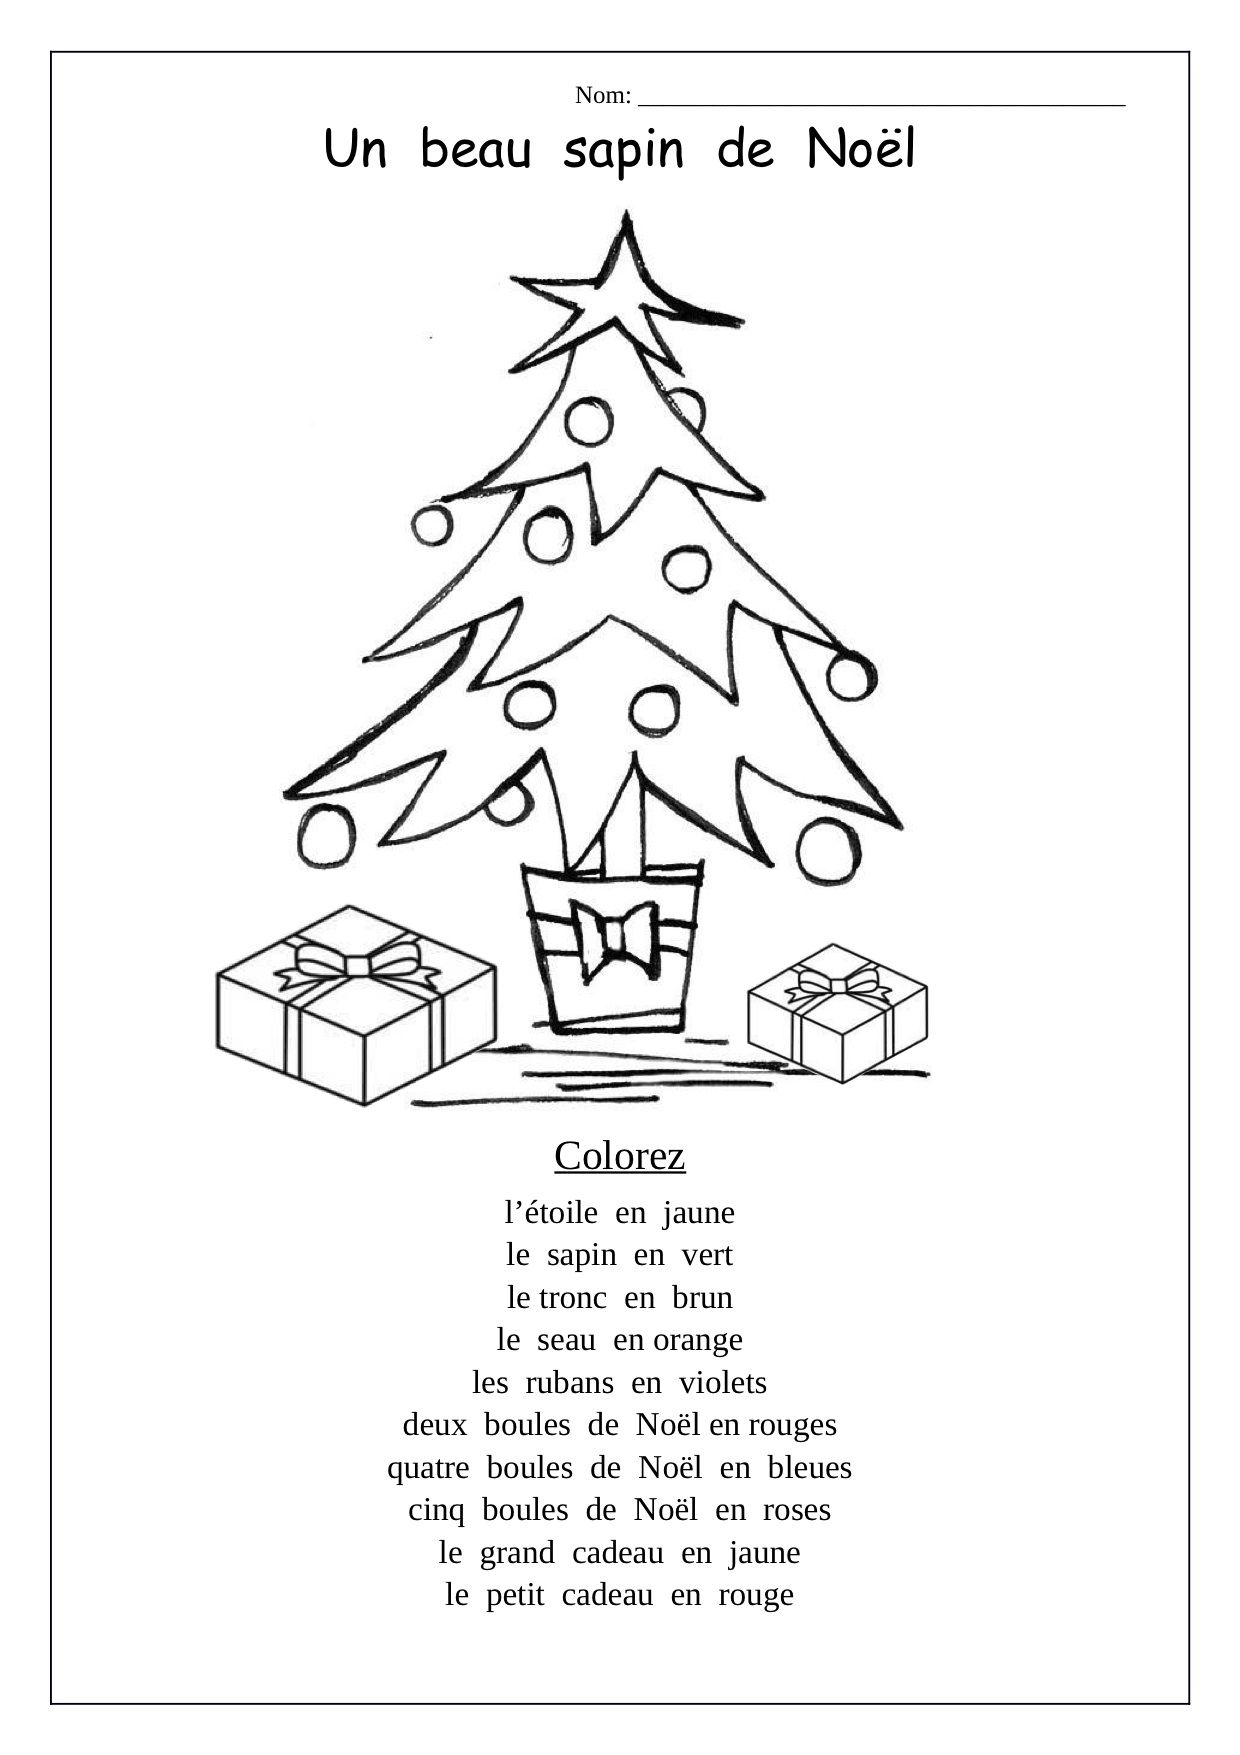 French Christmas Coloring Sheet Following Directions Using Vocab Joyeux Noel